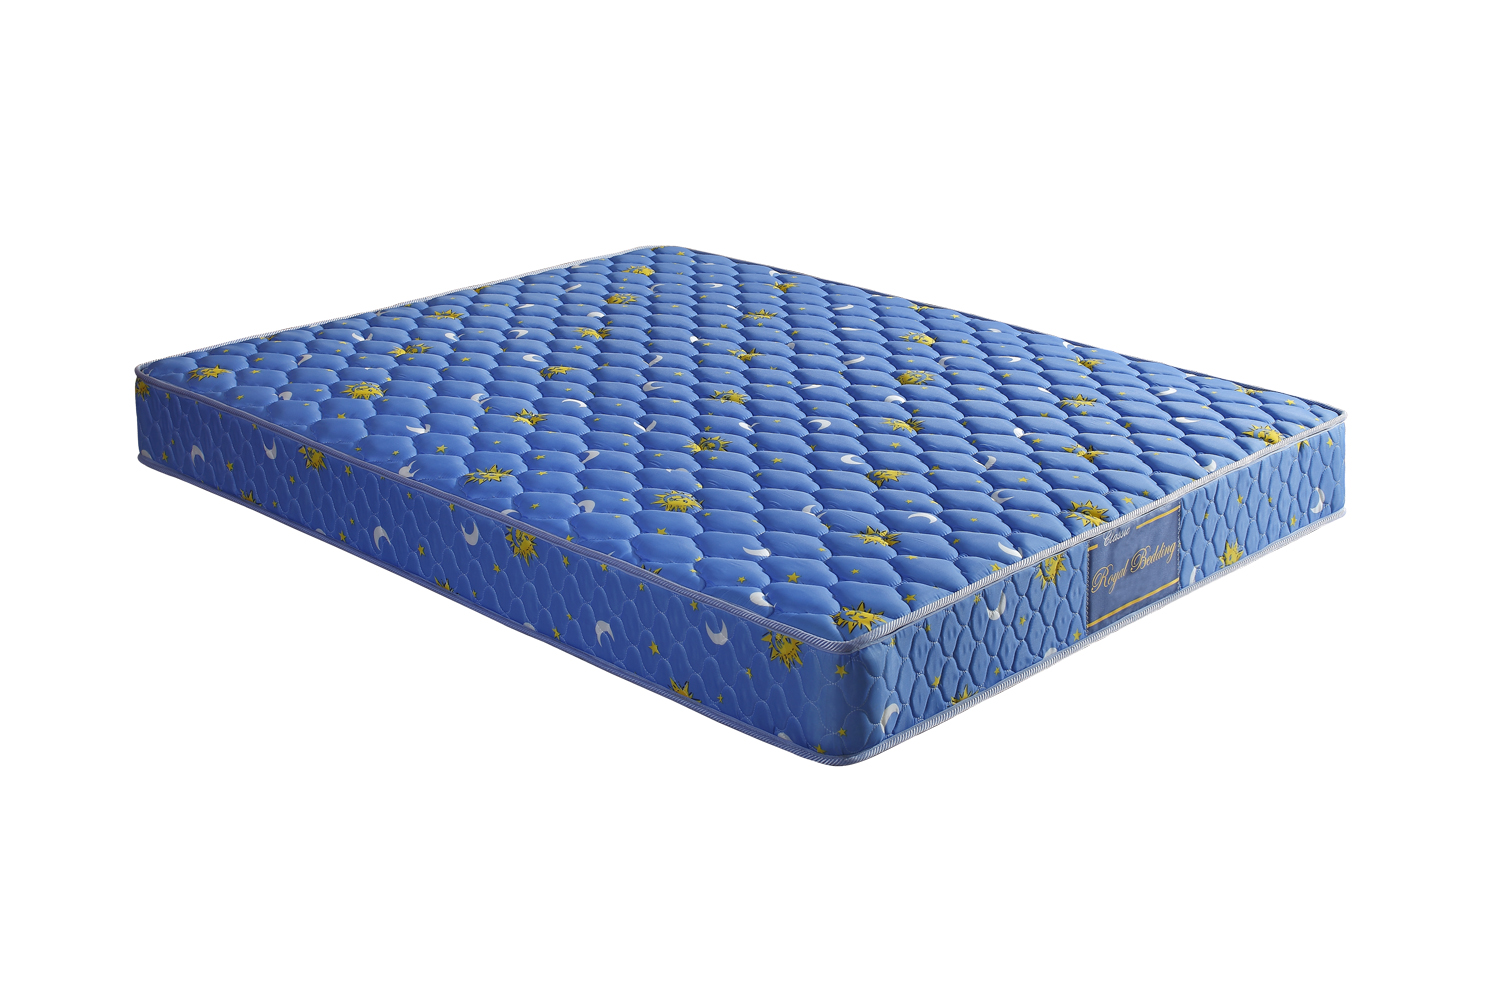 Cheap queen mattress for sale home version 2 who sells merax comfort sleep 6 inch quilted Queen beds for sale with mattress